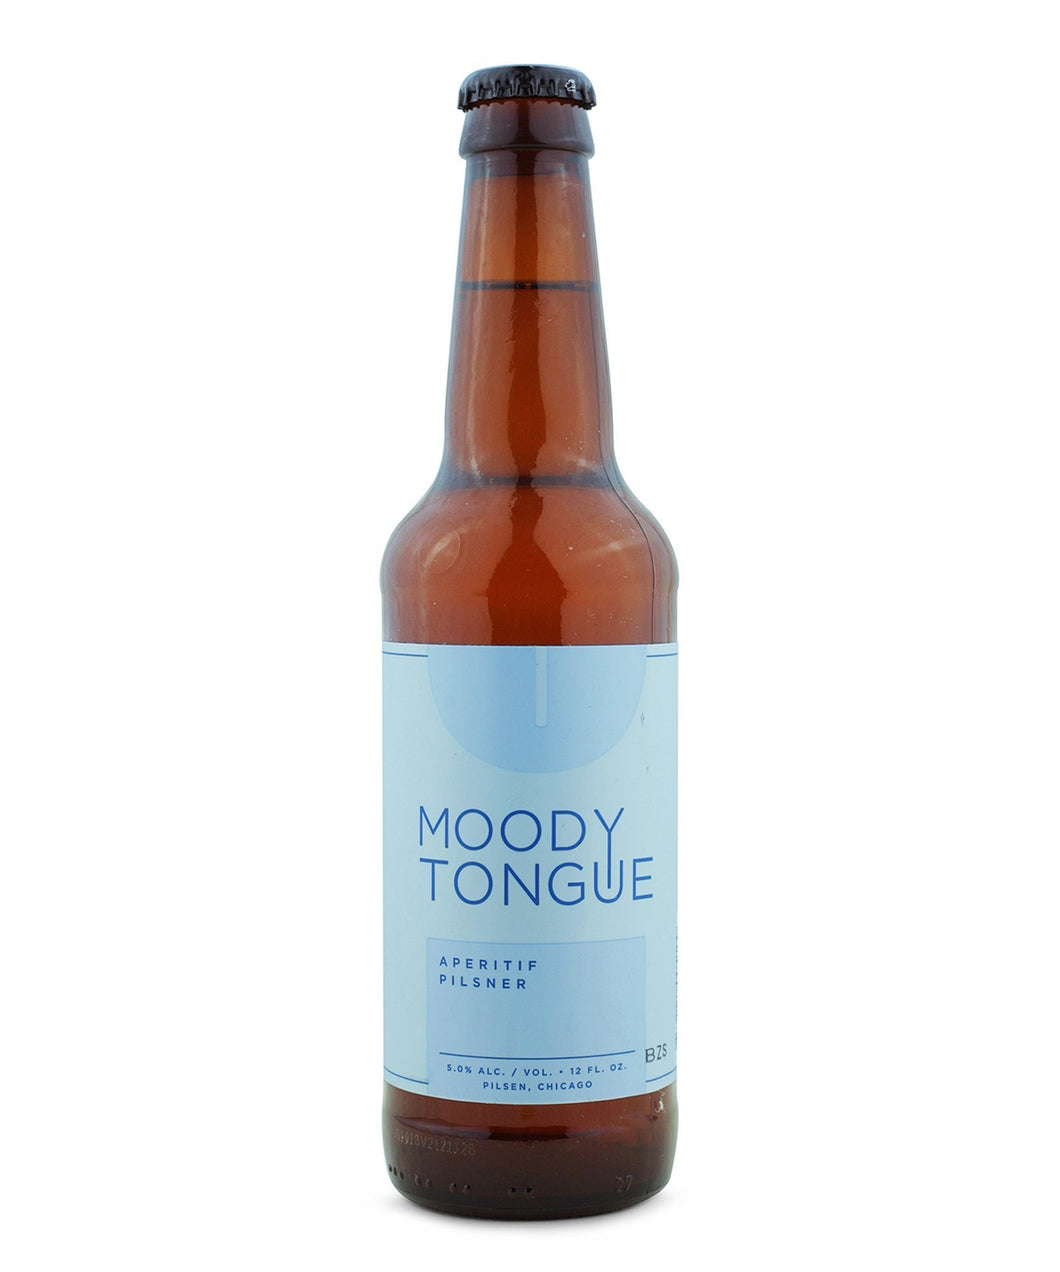 Aperitif Pilsner - Moody Tongue Brewing Company Delivered By TapRm